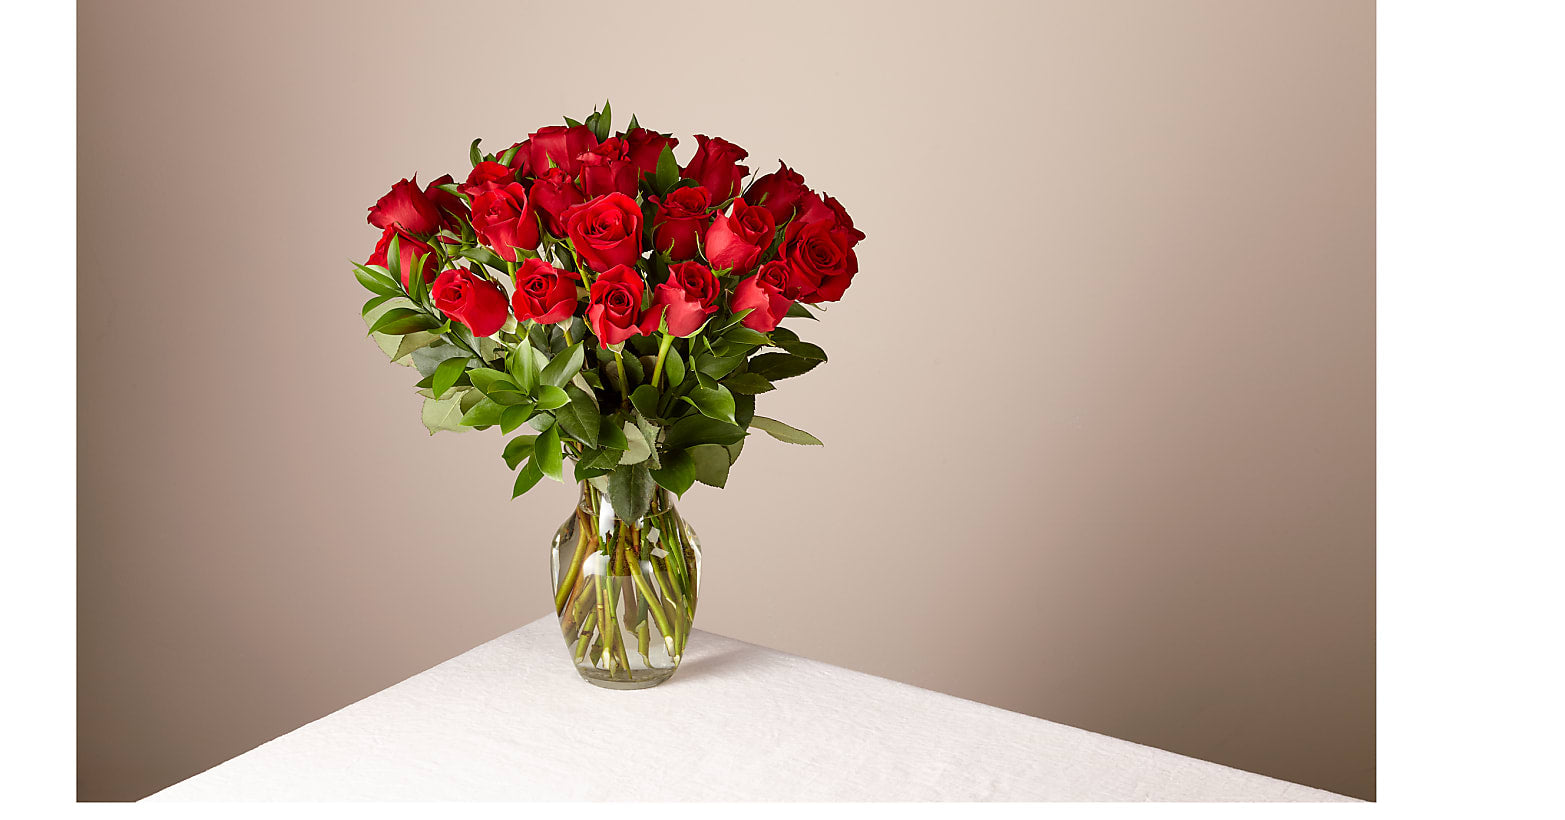 24 Red Roses with Glass Vase - Image 1 Of 5